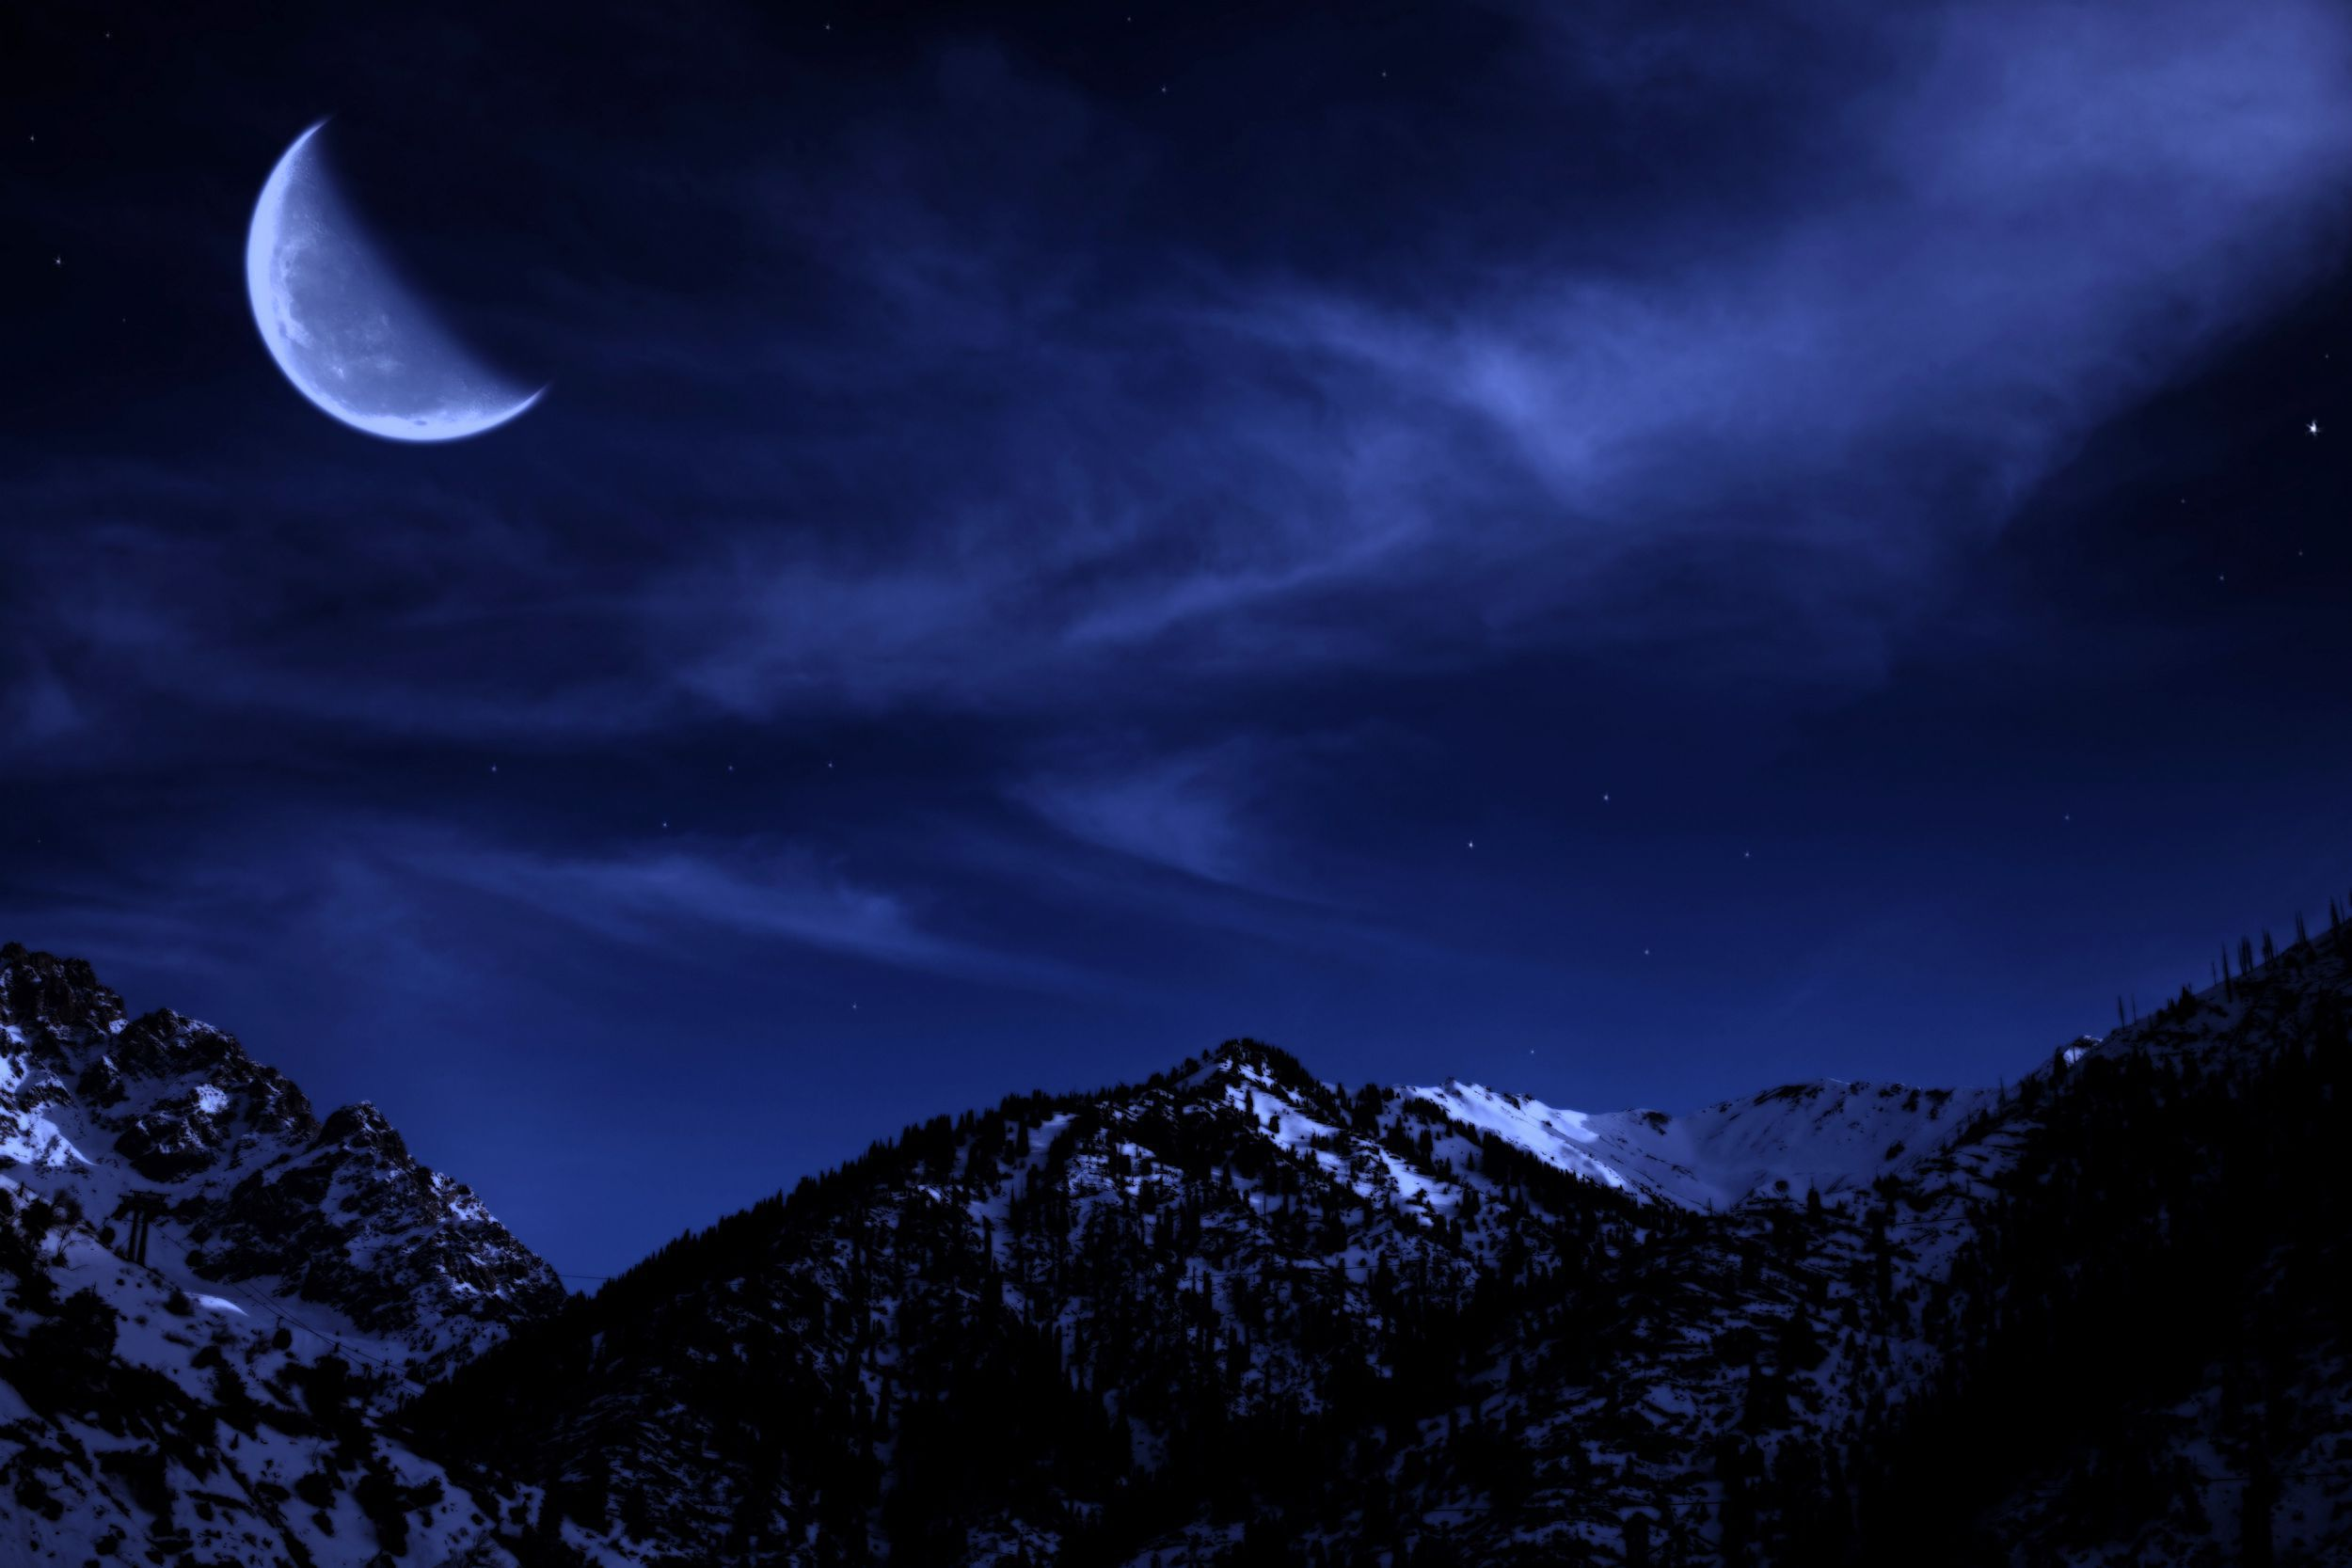 Blue Moon Wallpaper Pack